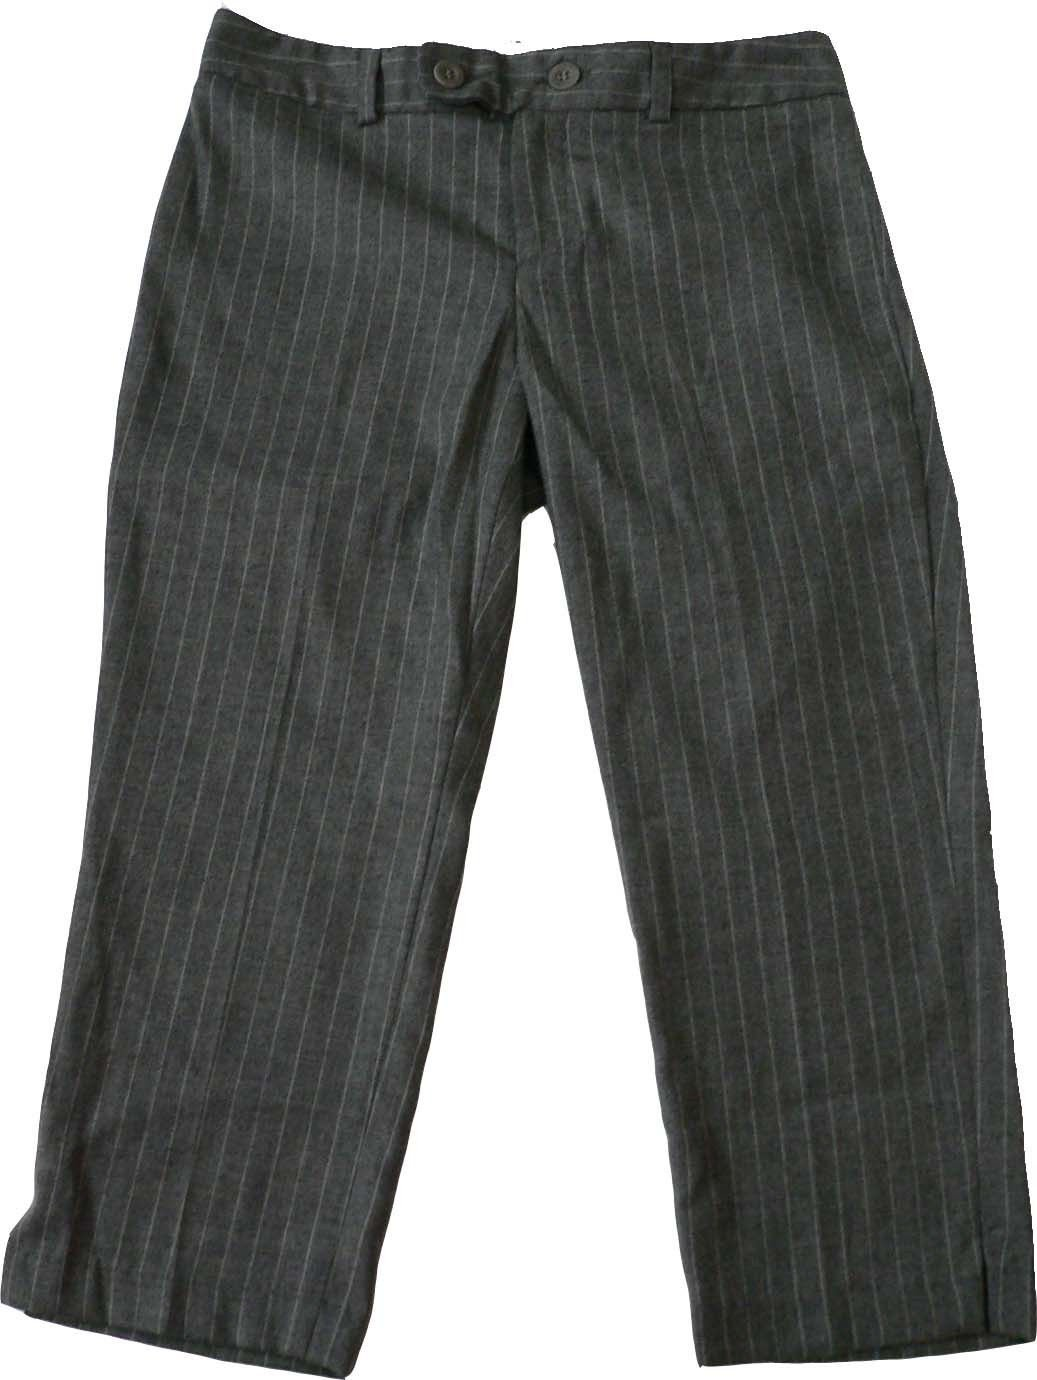 NWT CATHERINE MALANDRINO wool pinstriped pants $265 8 career gray cropped